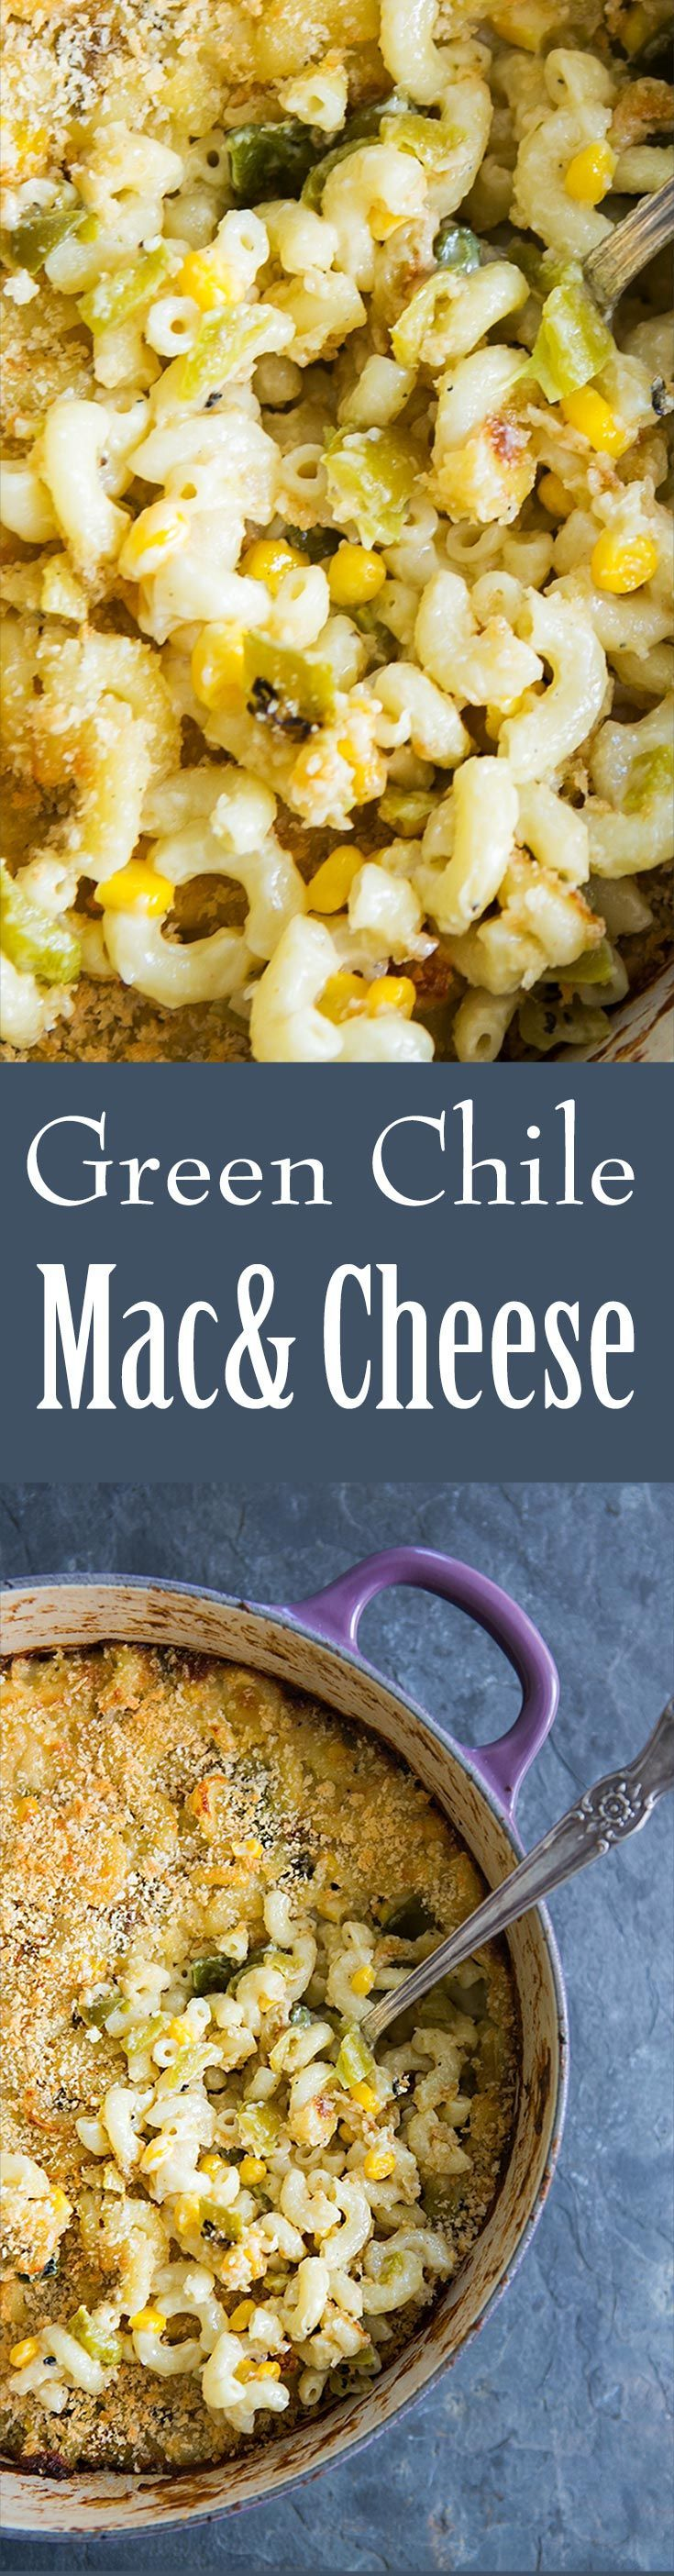 What could make mac & cheese even better? Taking it on a southwestern spin with roasted green chiles, corn, and jack cheese! On SimplyRecipes.com